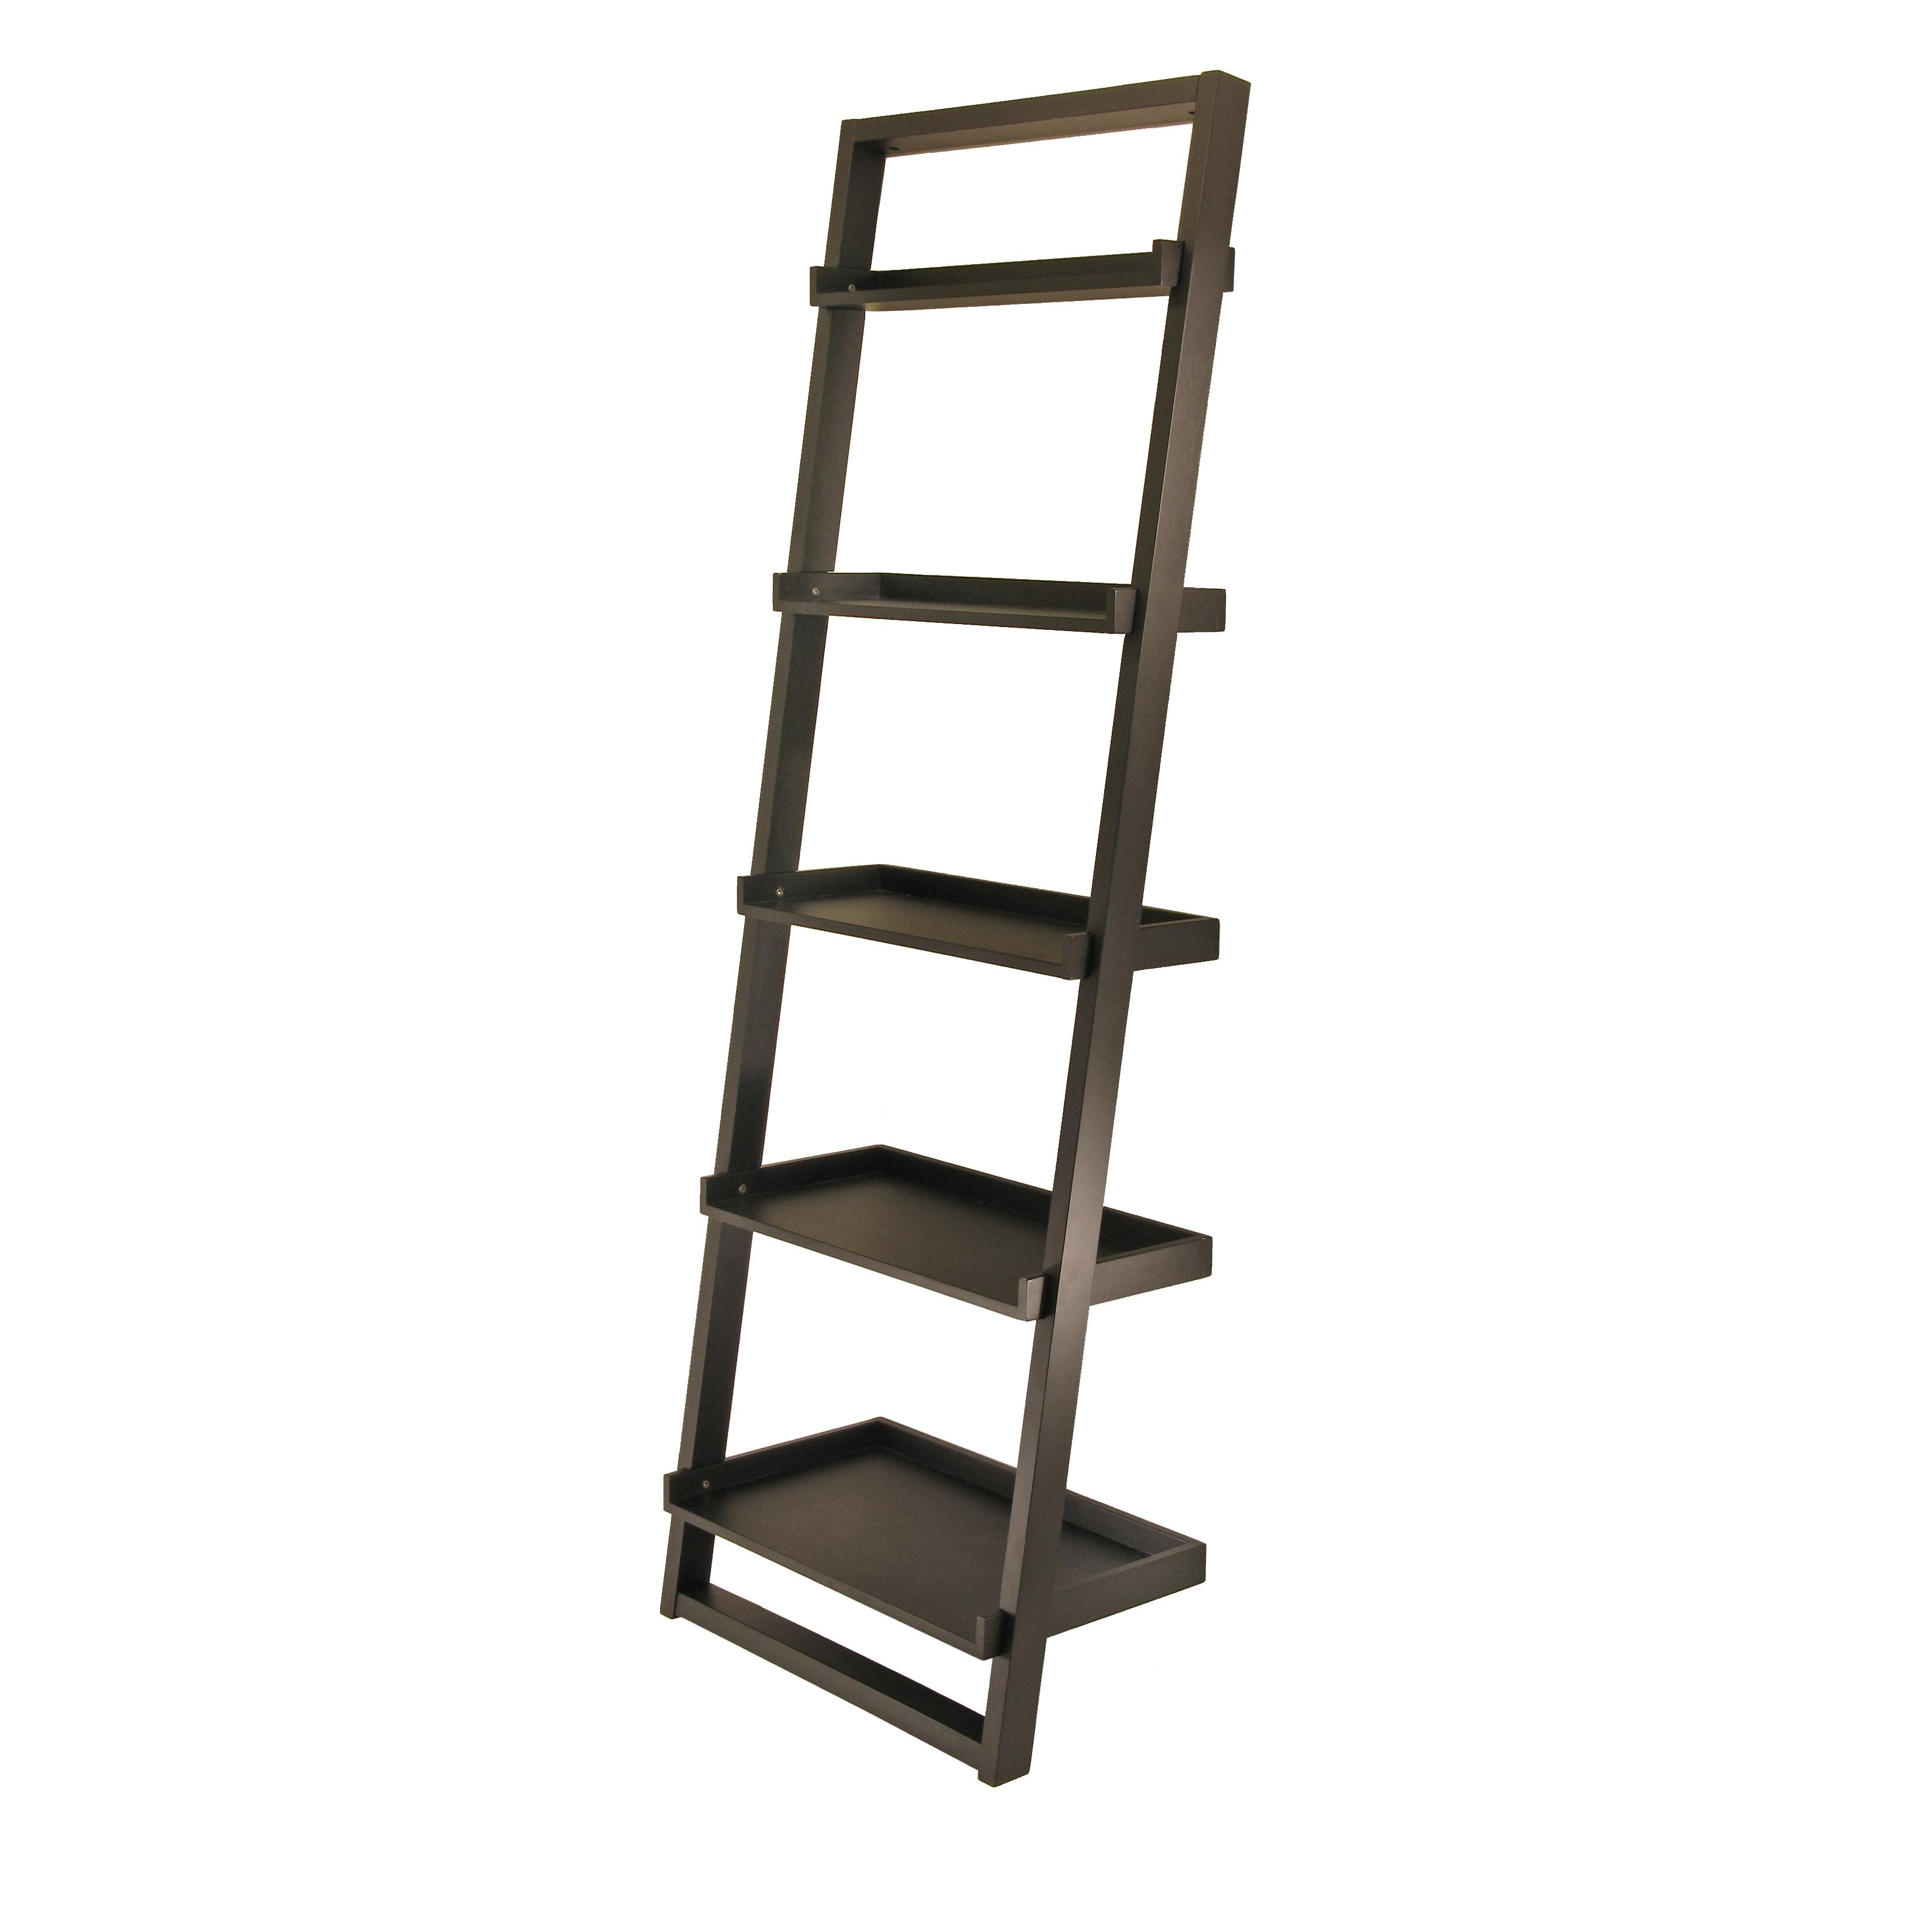 winsome wood bailey leaning 5 tier shelving unit black kitchen dining. Black Bedroom Furniture Sets. Home Design Ideas